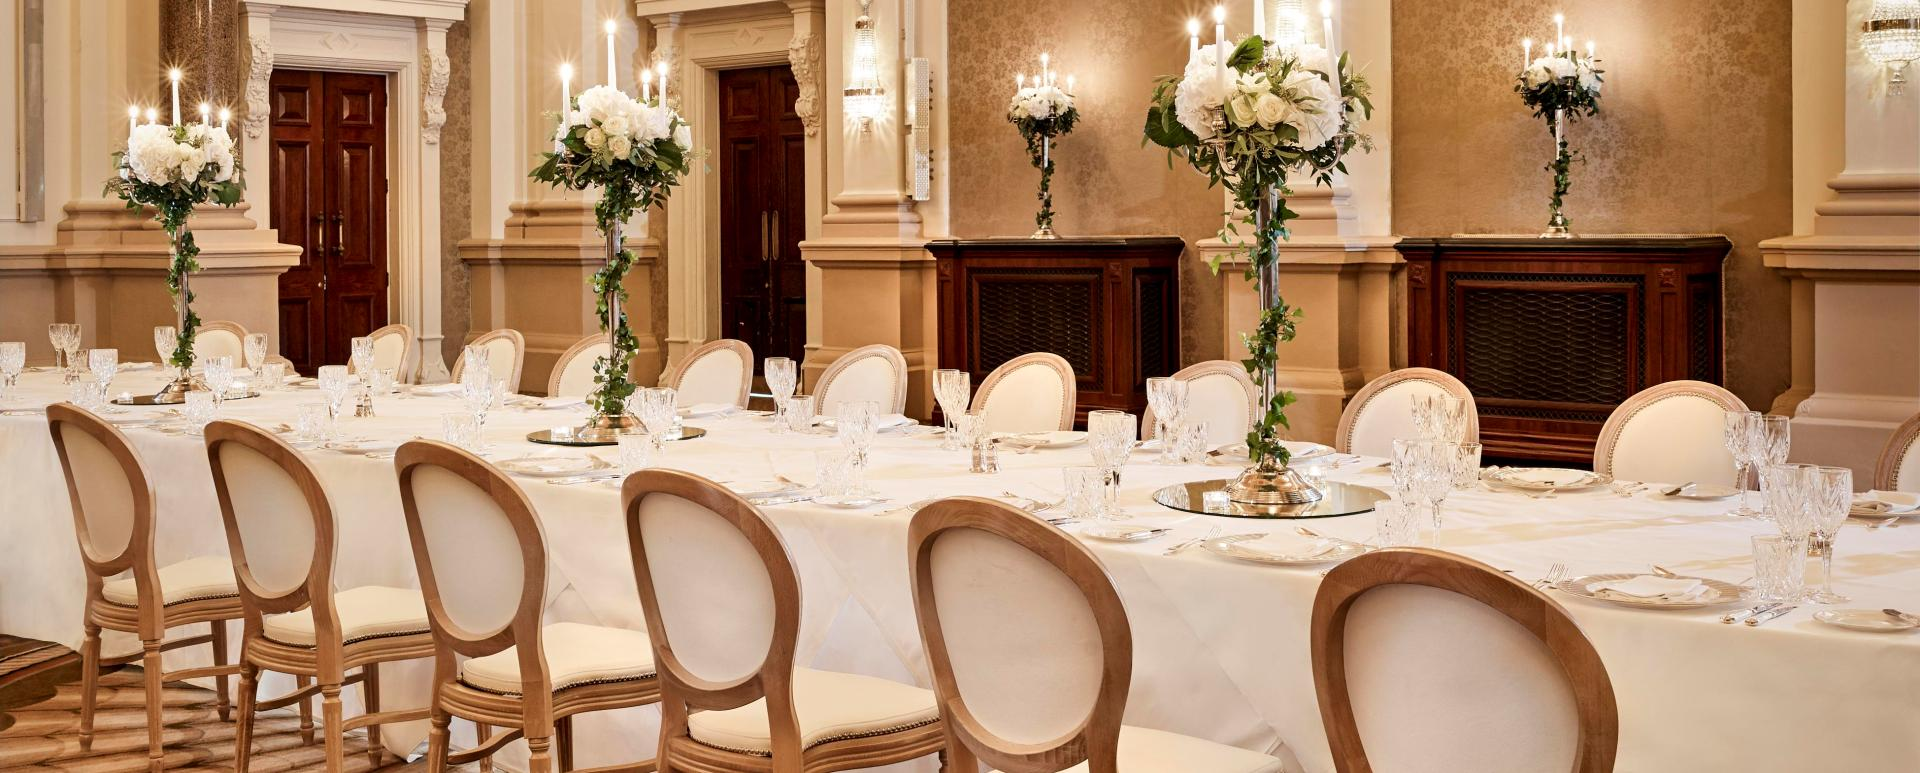 Private Dining The Banking Hall Dublin - Executive Dining